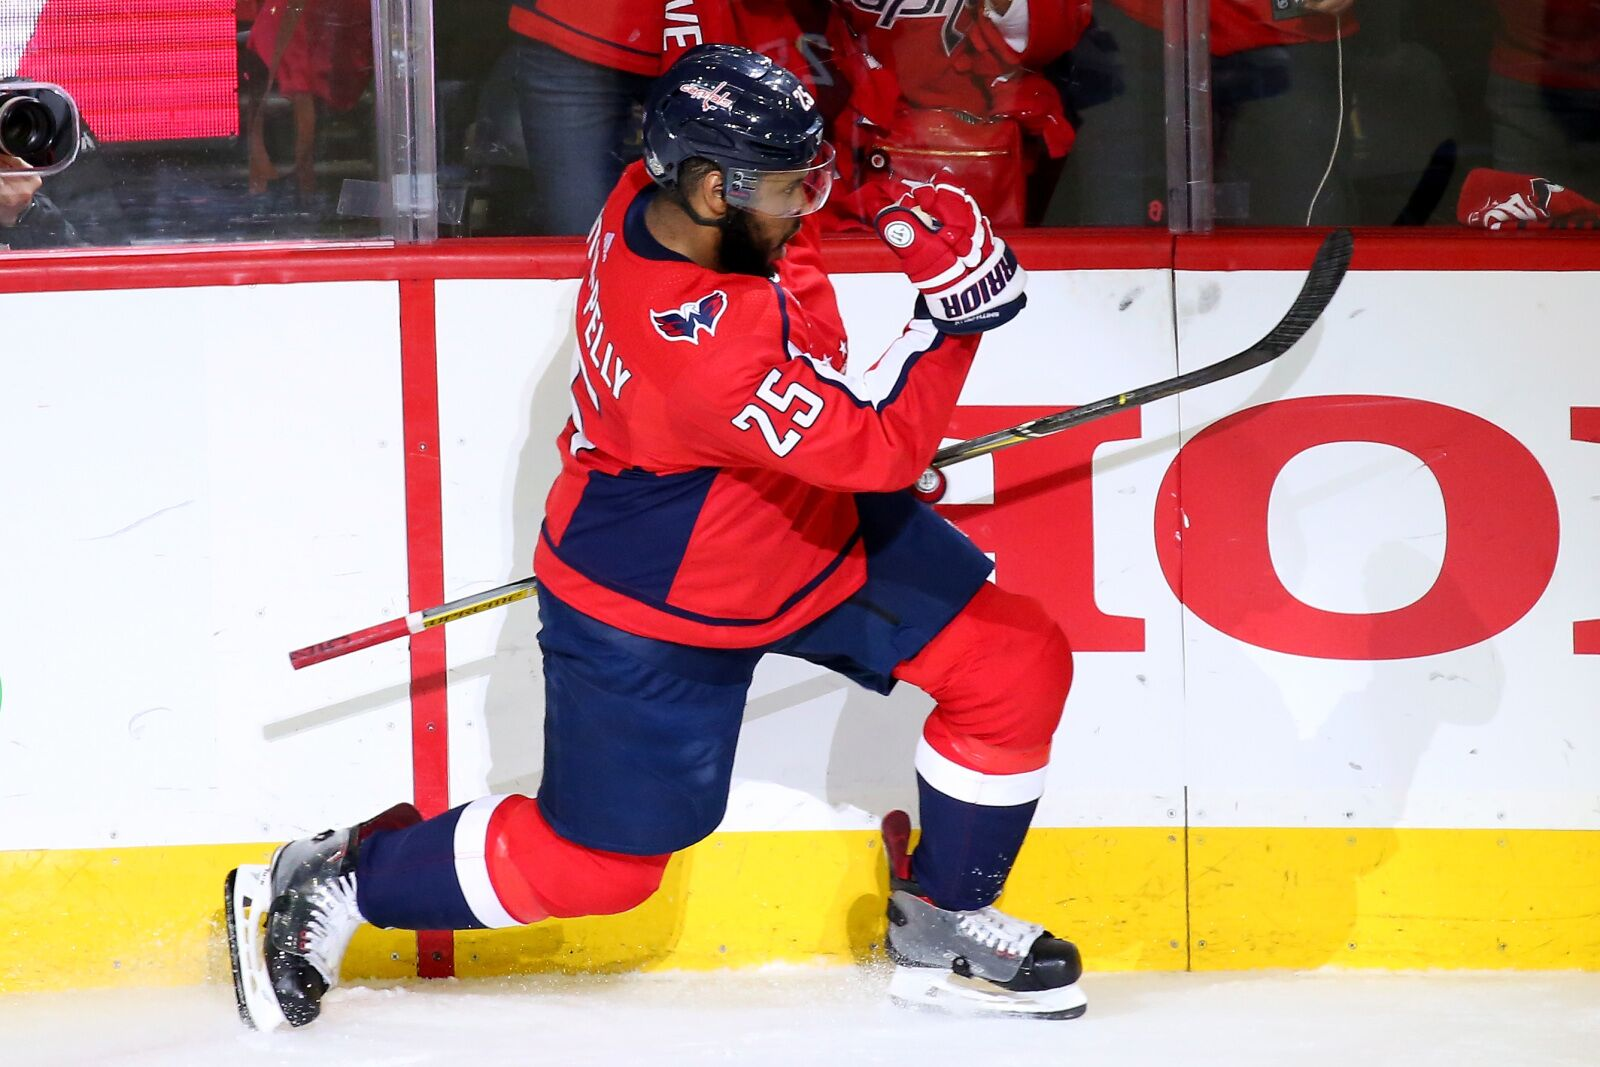 b8352177651 Capitals' Devante Smith-Pelly just went Pete Townshend on the celly